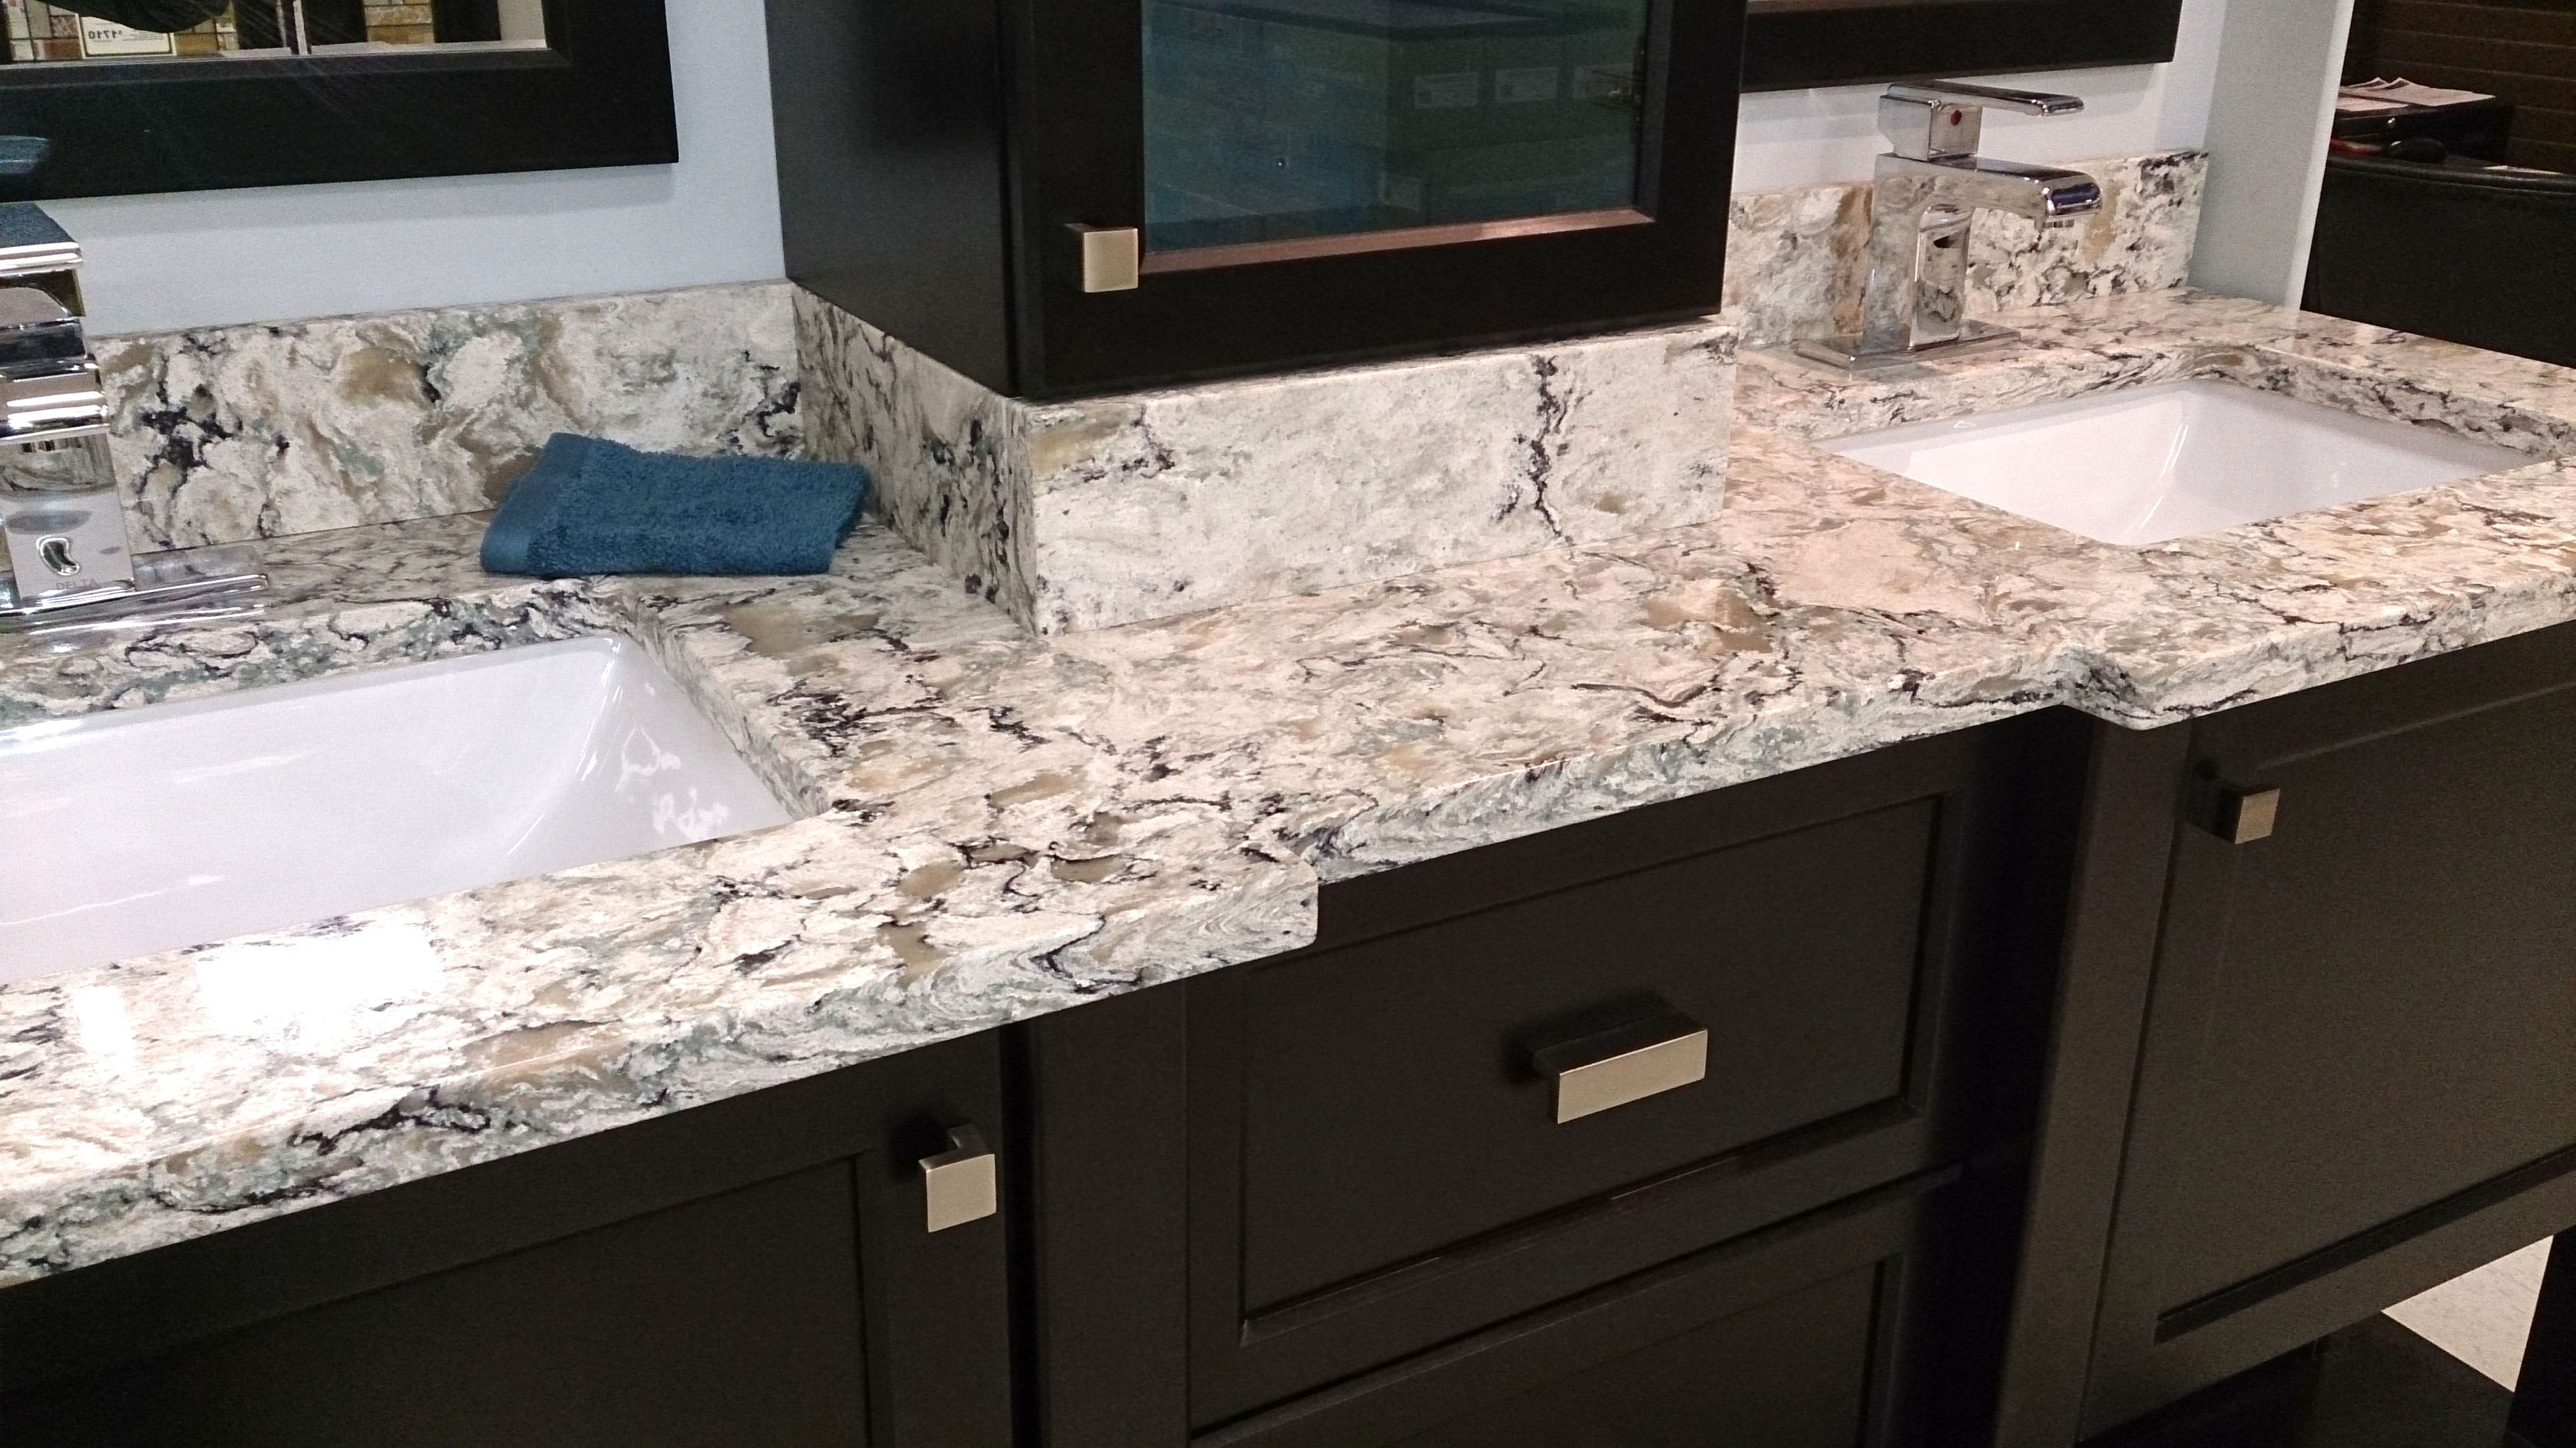 Matching Countertops With Cabinets Cambria Praa Sands With Matching Backsplash And Bump Outs